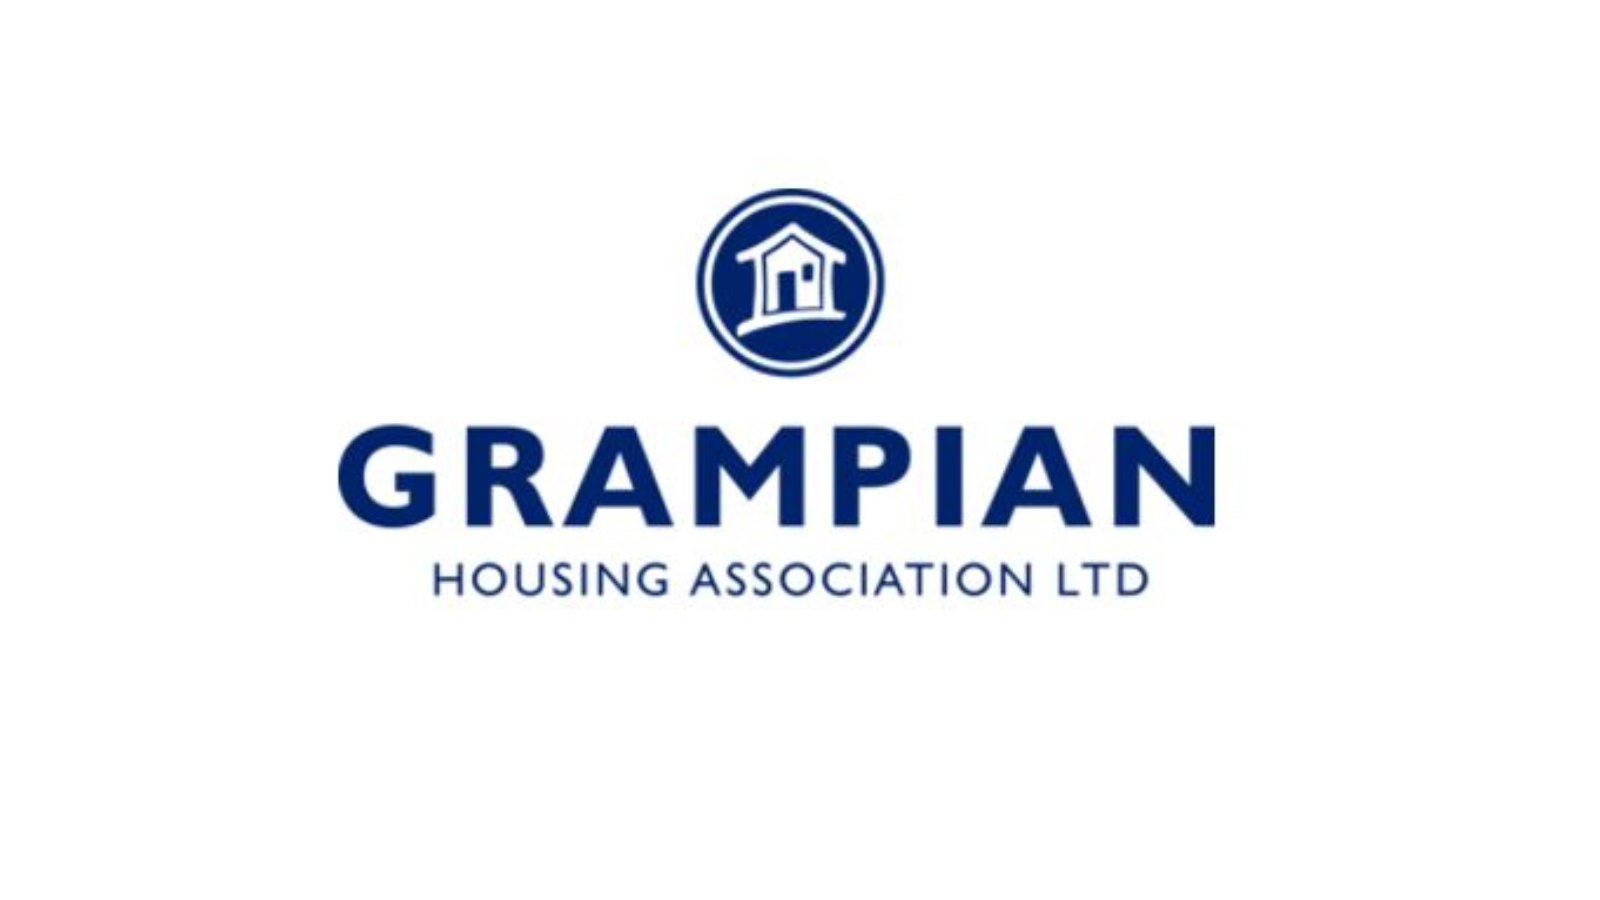 Grampian Housing Association: Reducing waste and costs